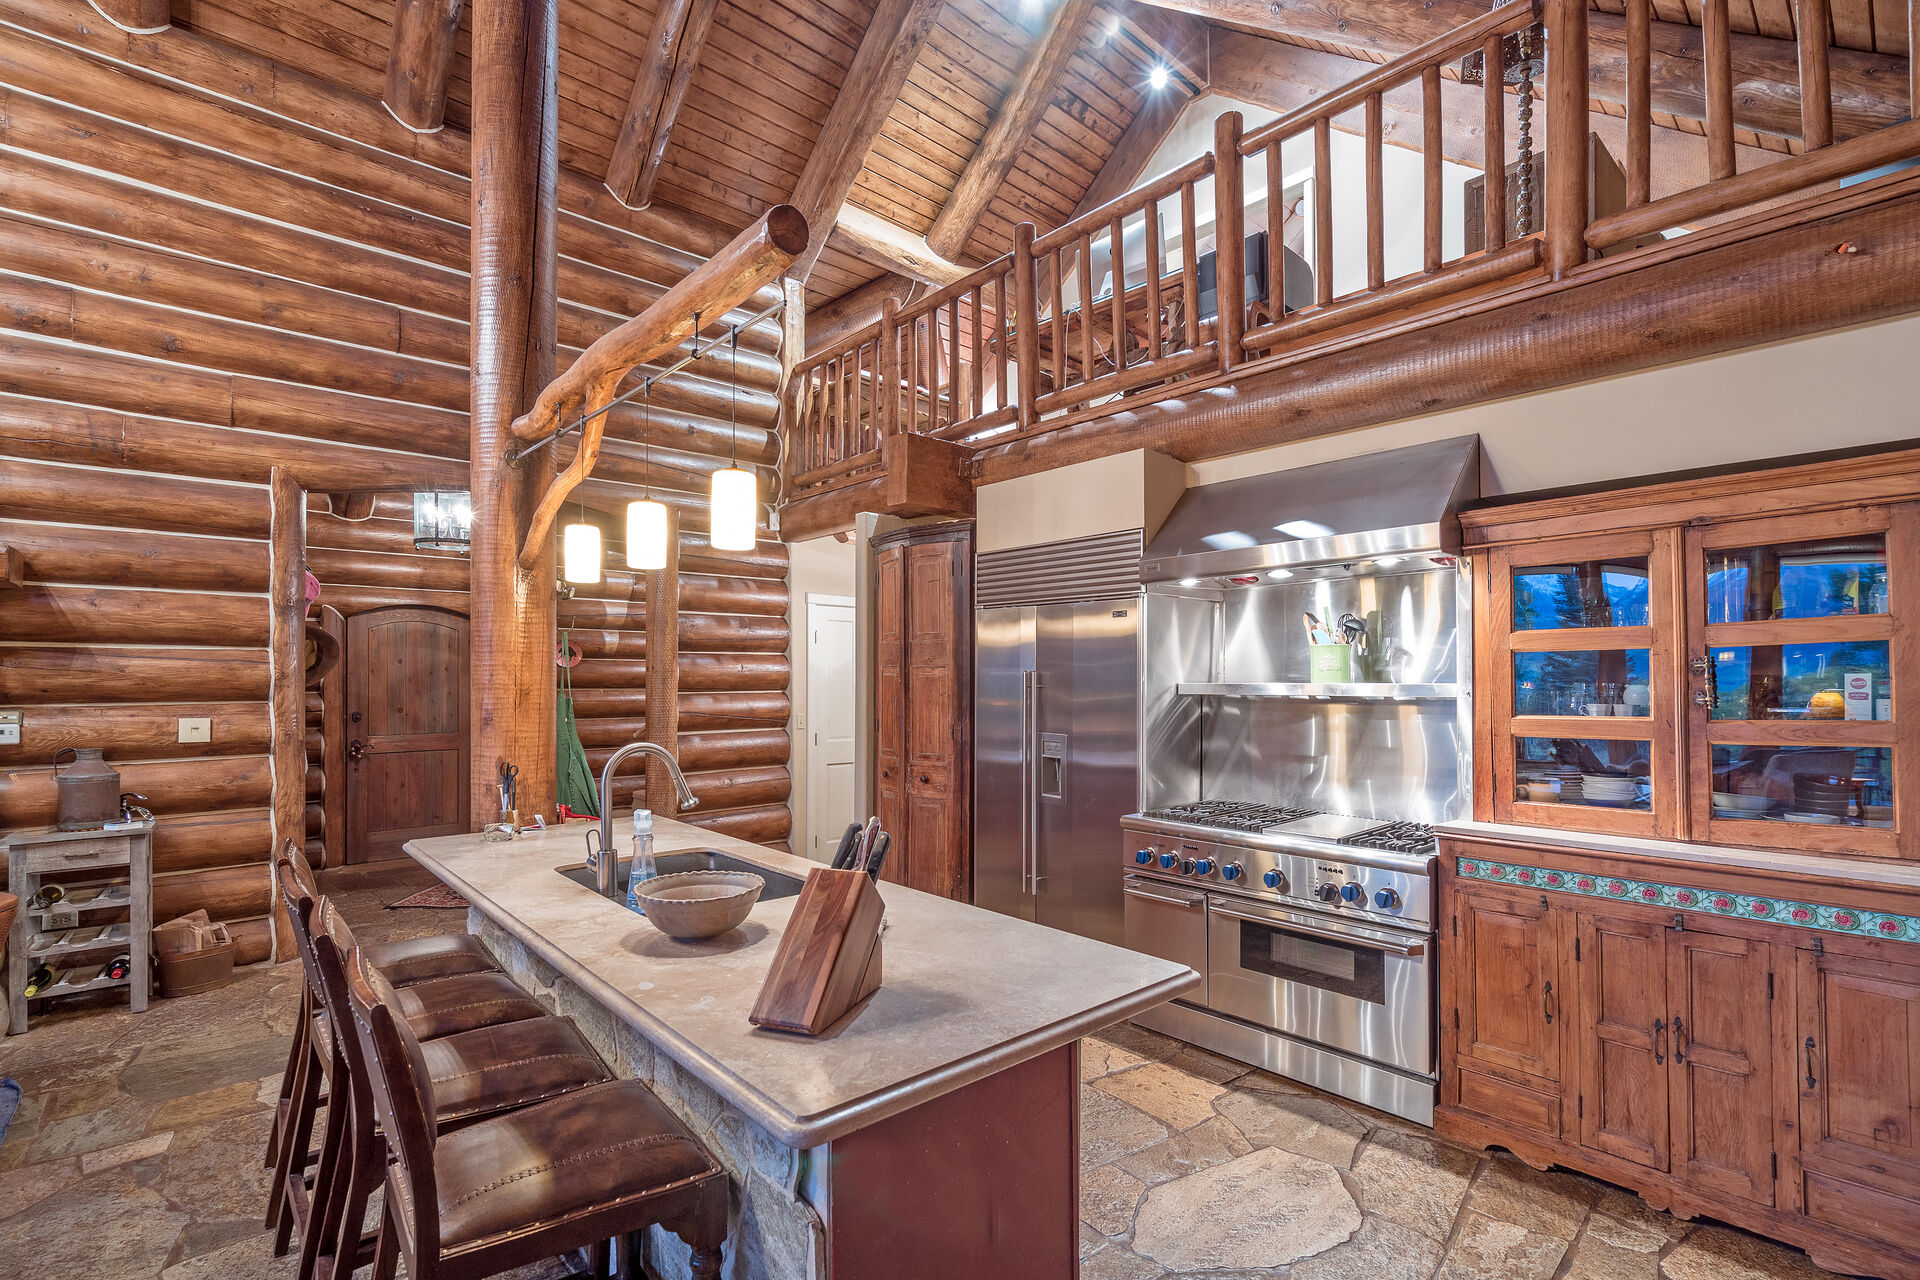 Full Kitchen with Chef Ready Stove and Views of the Loft